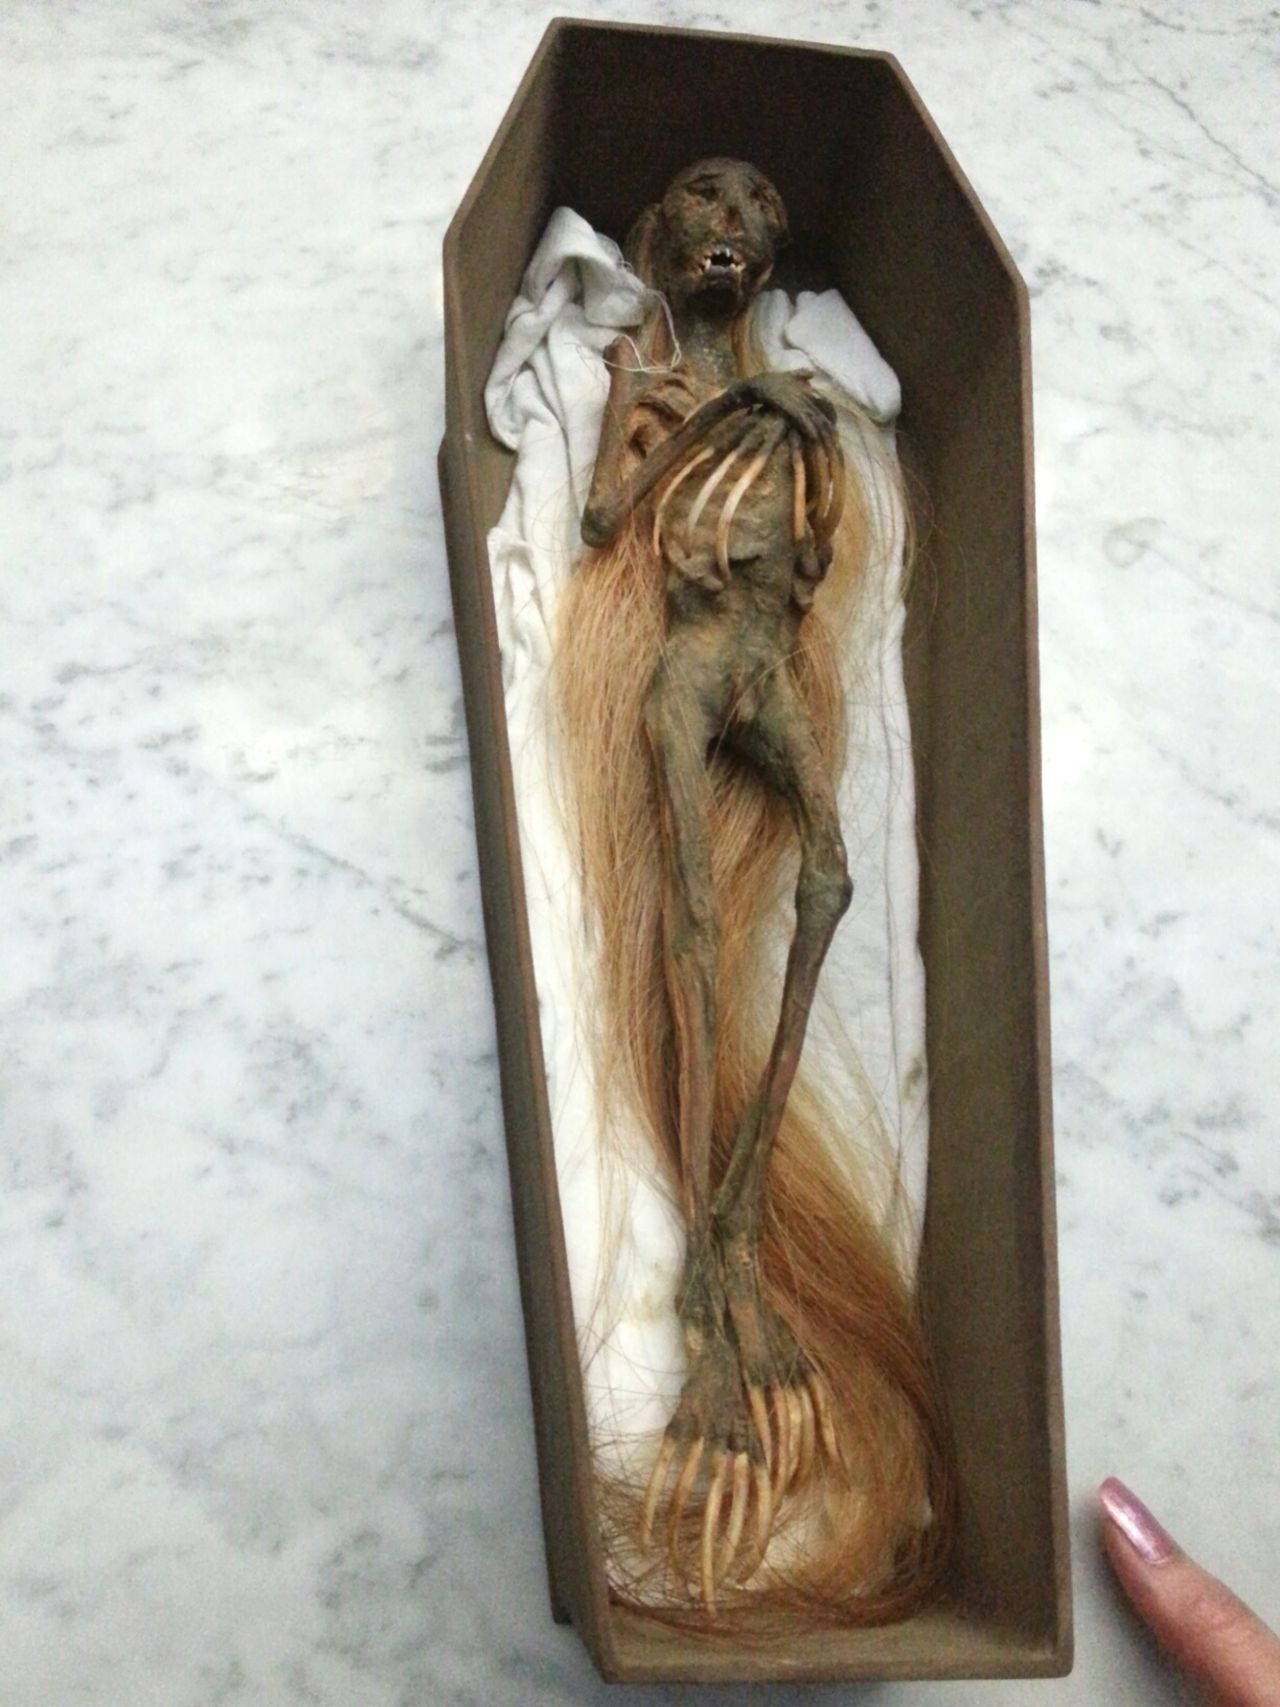 A mummified creature of some sort with human figure but their hair and nail do grow with time. It is a mythical creature commonly found in Indonesia. I am quite privileged to catch it on my last visit to Indonesia in a private collector's home. Creatures Mystical Mysticalcreatures Mummies Strange Strange Creatures EyeEm Indonesia INDONESIA Jenggot